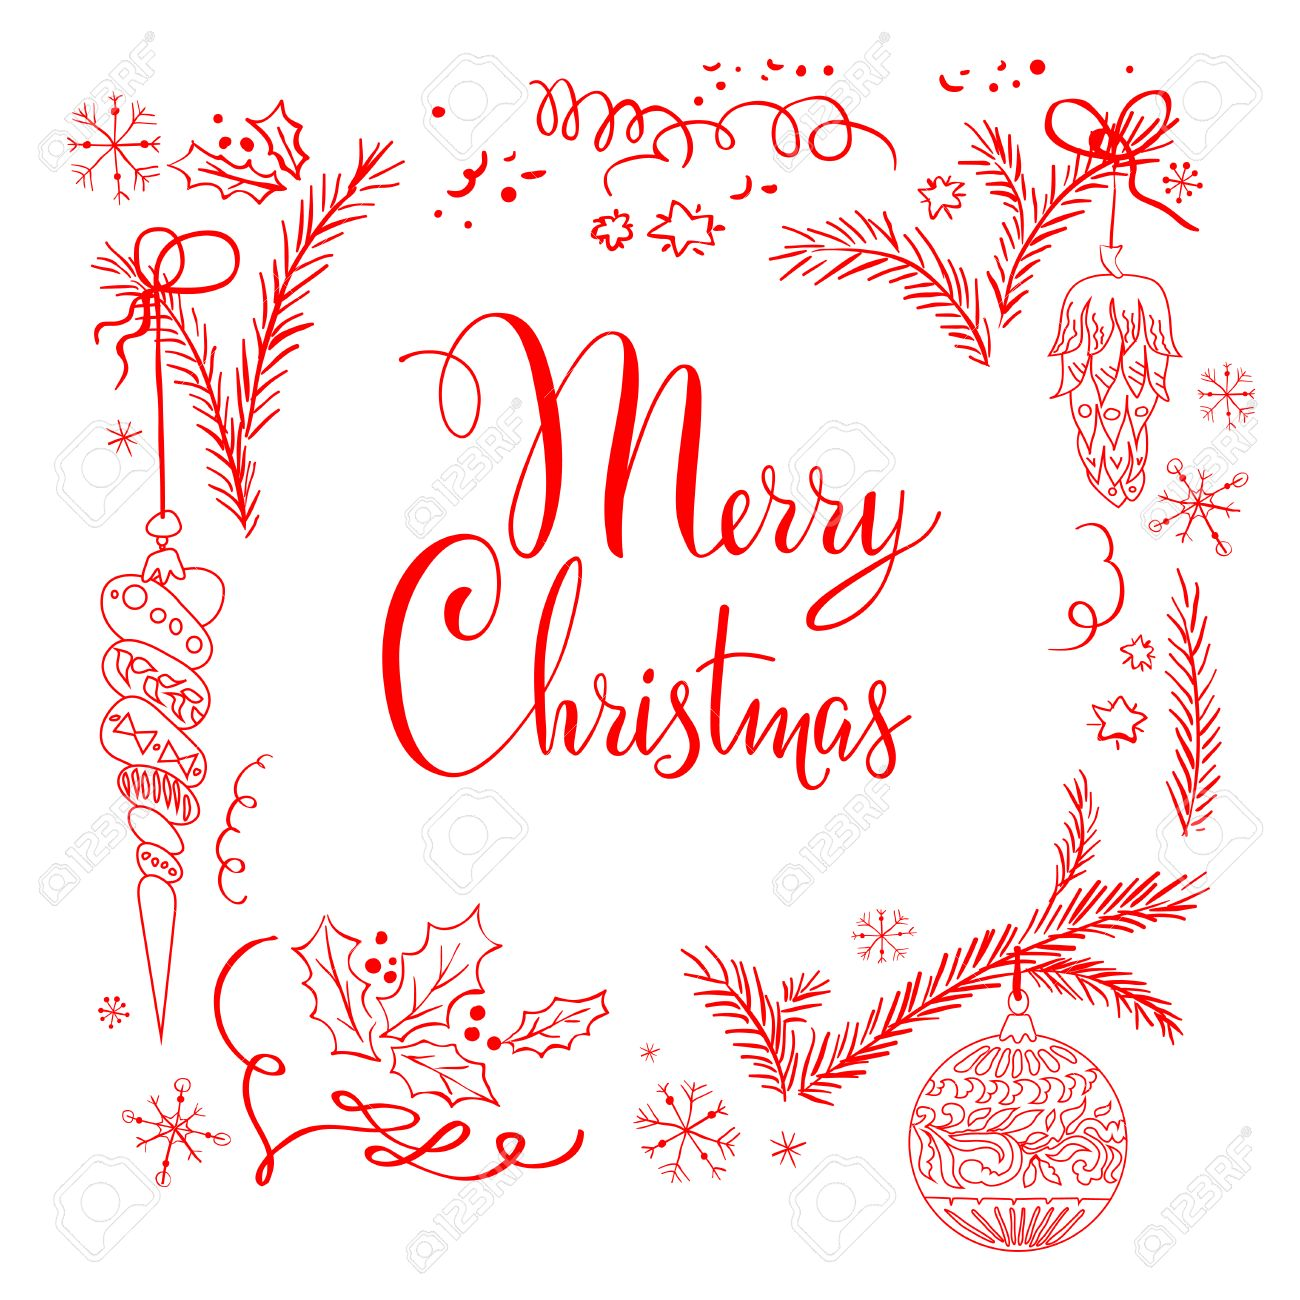 Merry Christmas lettering isolated on white background - 33461022